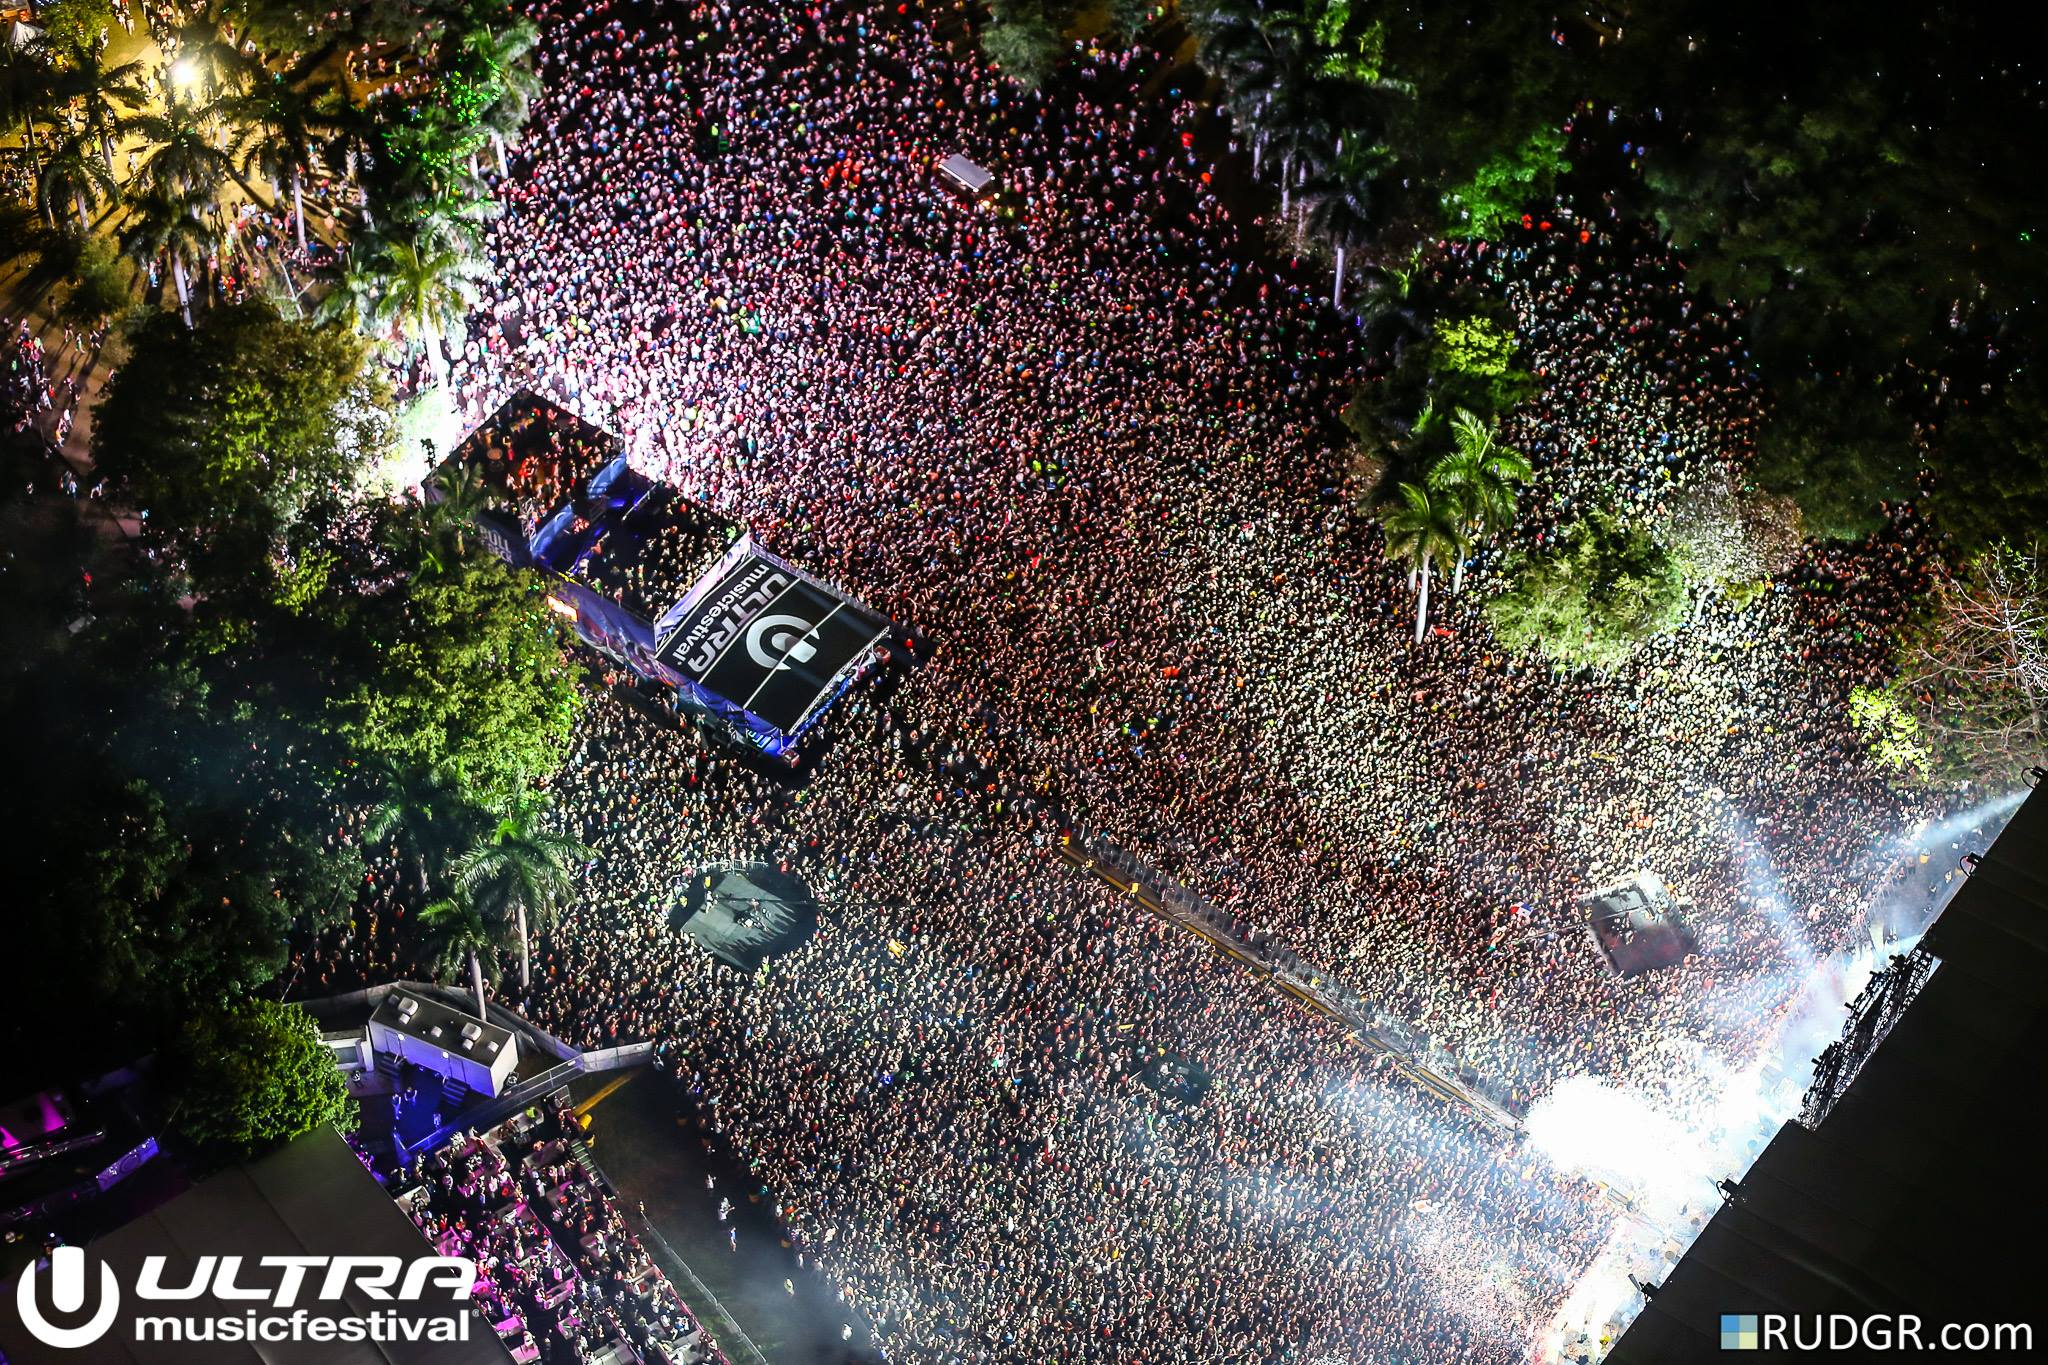 ULTRA Worldwide Adds Australia, China, Ibiza & India to Global Calendar